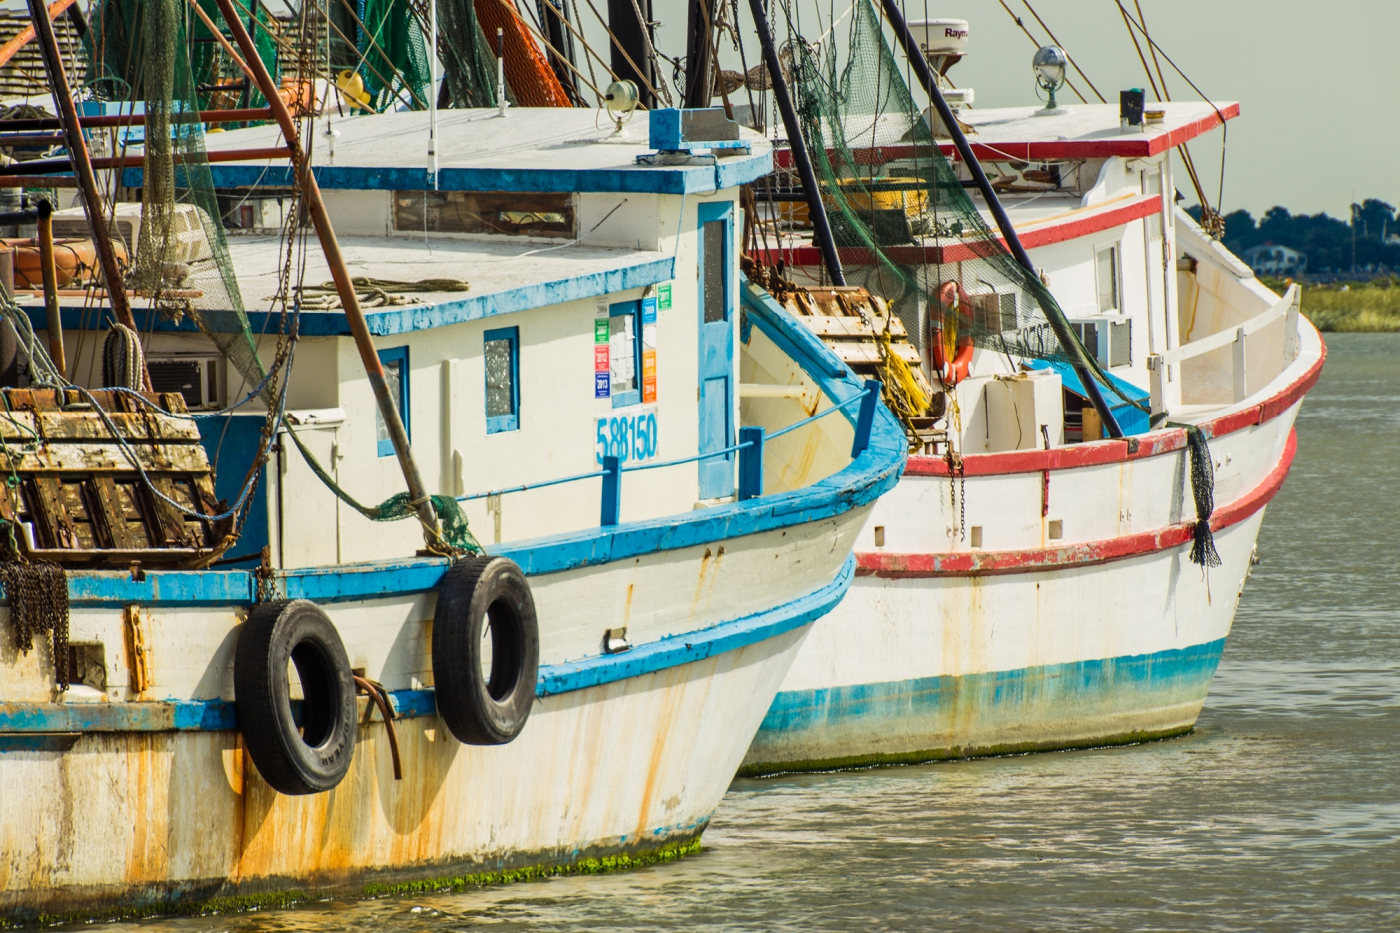 Charleston's fishing boats bring in some of the freshest local seafood you can find!